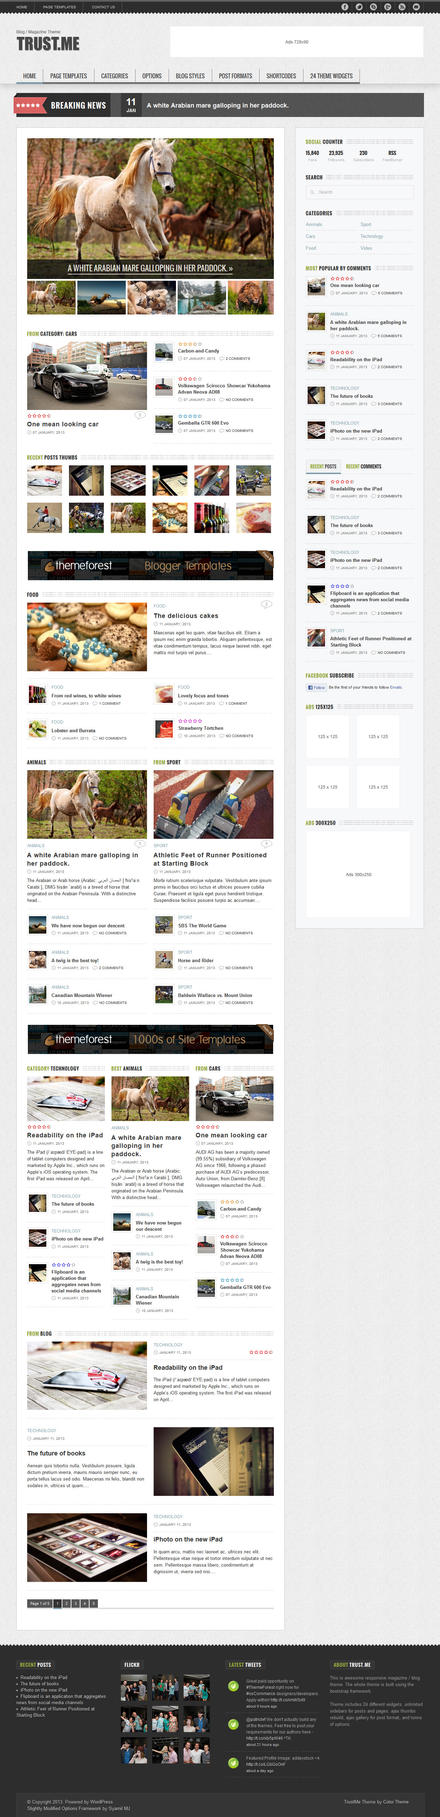 TrustMe - Responsive Wordpress Blog Theme by ZERGEV